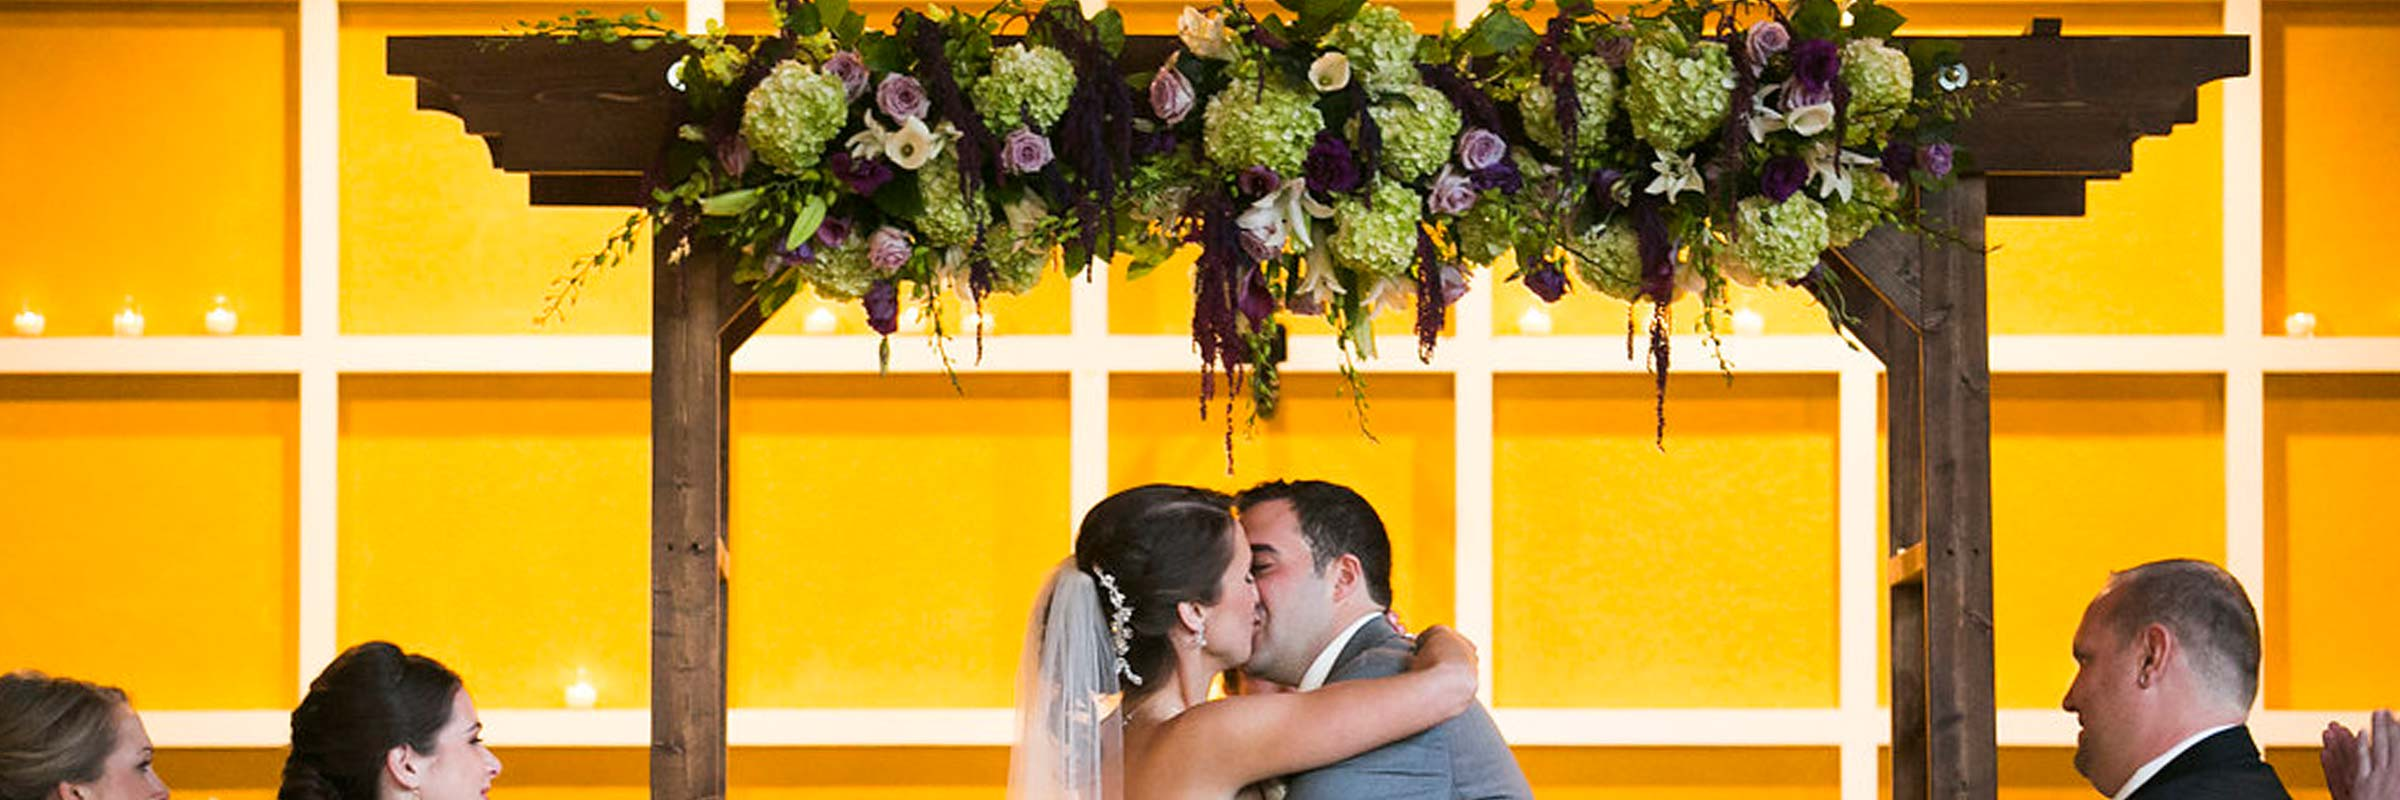 Wedding Arch Fresh Flower Kissing Bride Groom